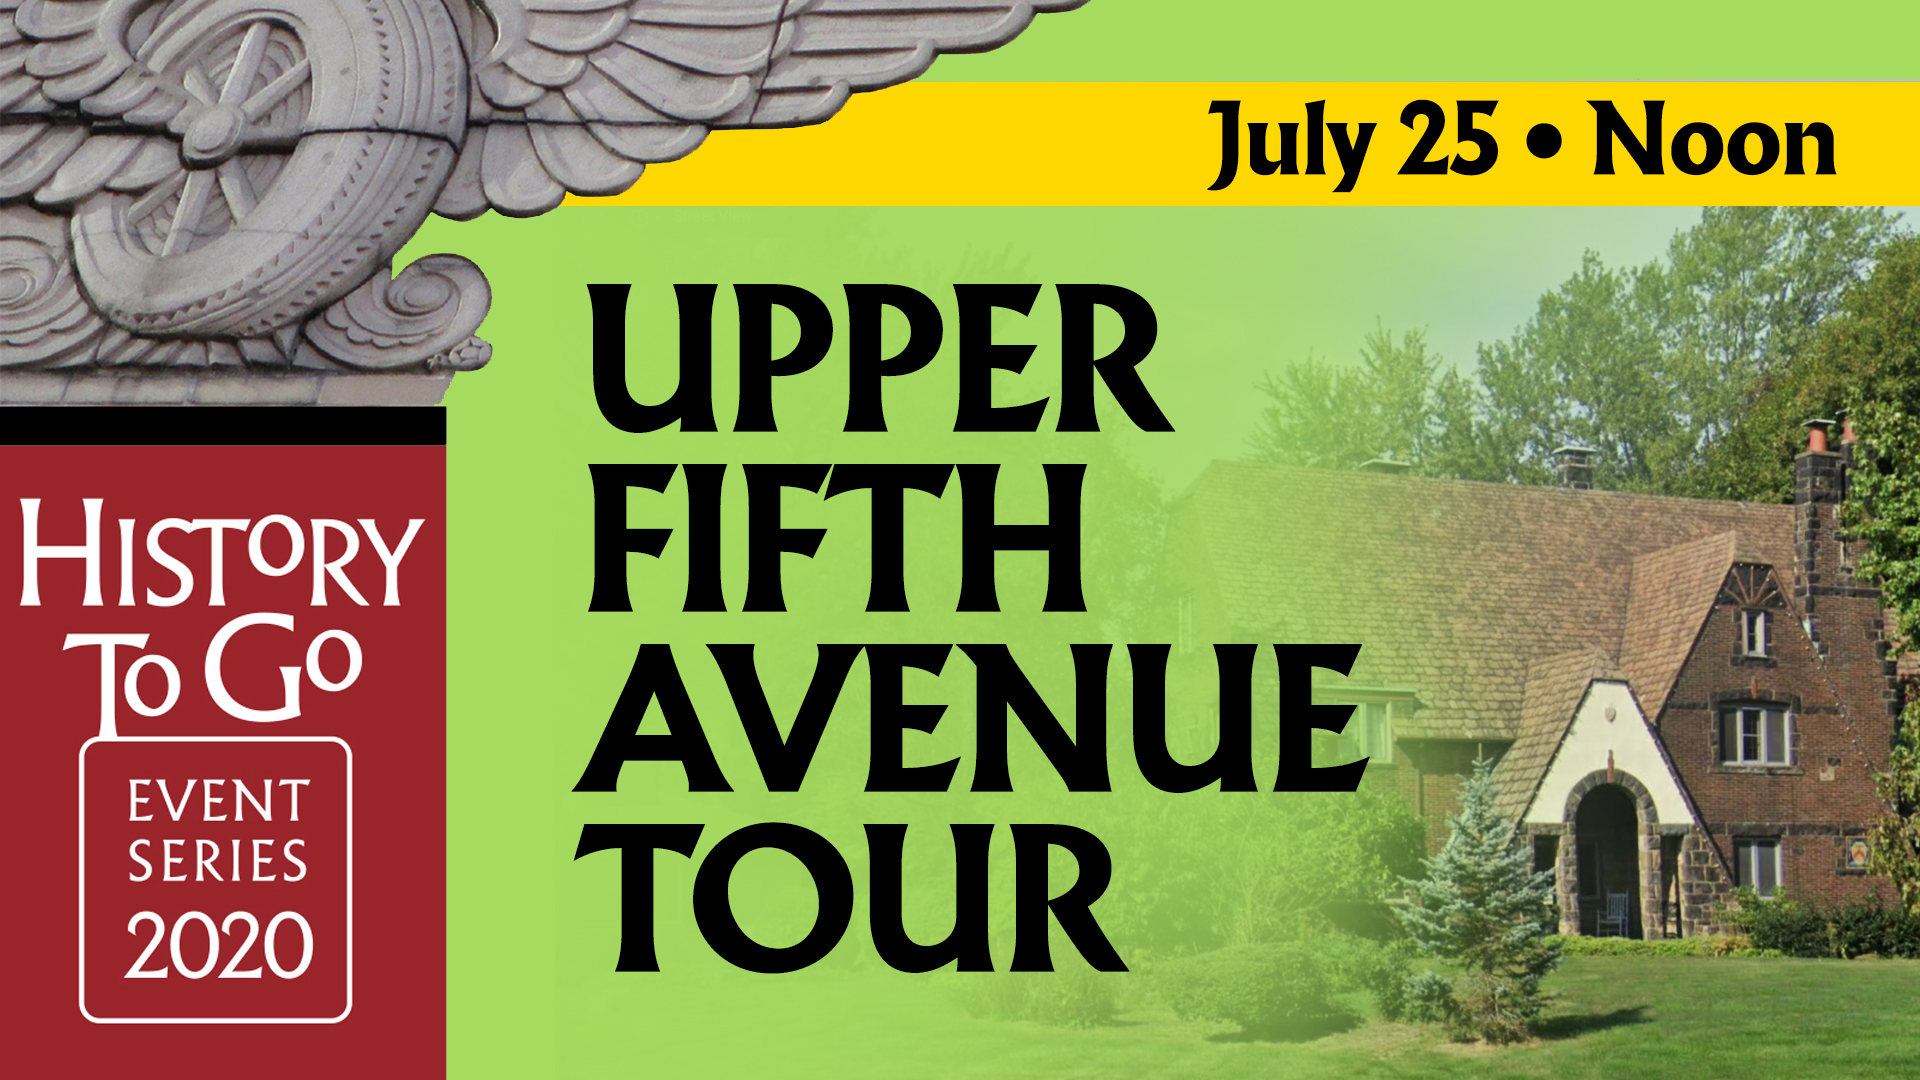 History To Go: Upper Fifth Avenue Tour